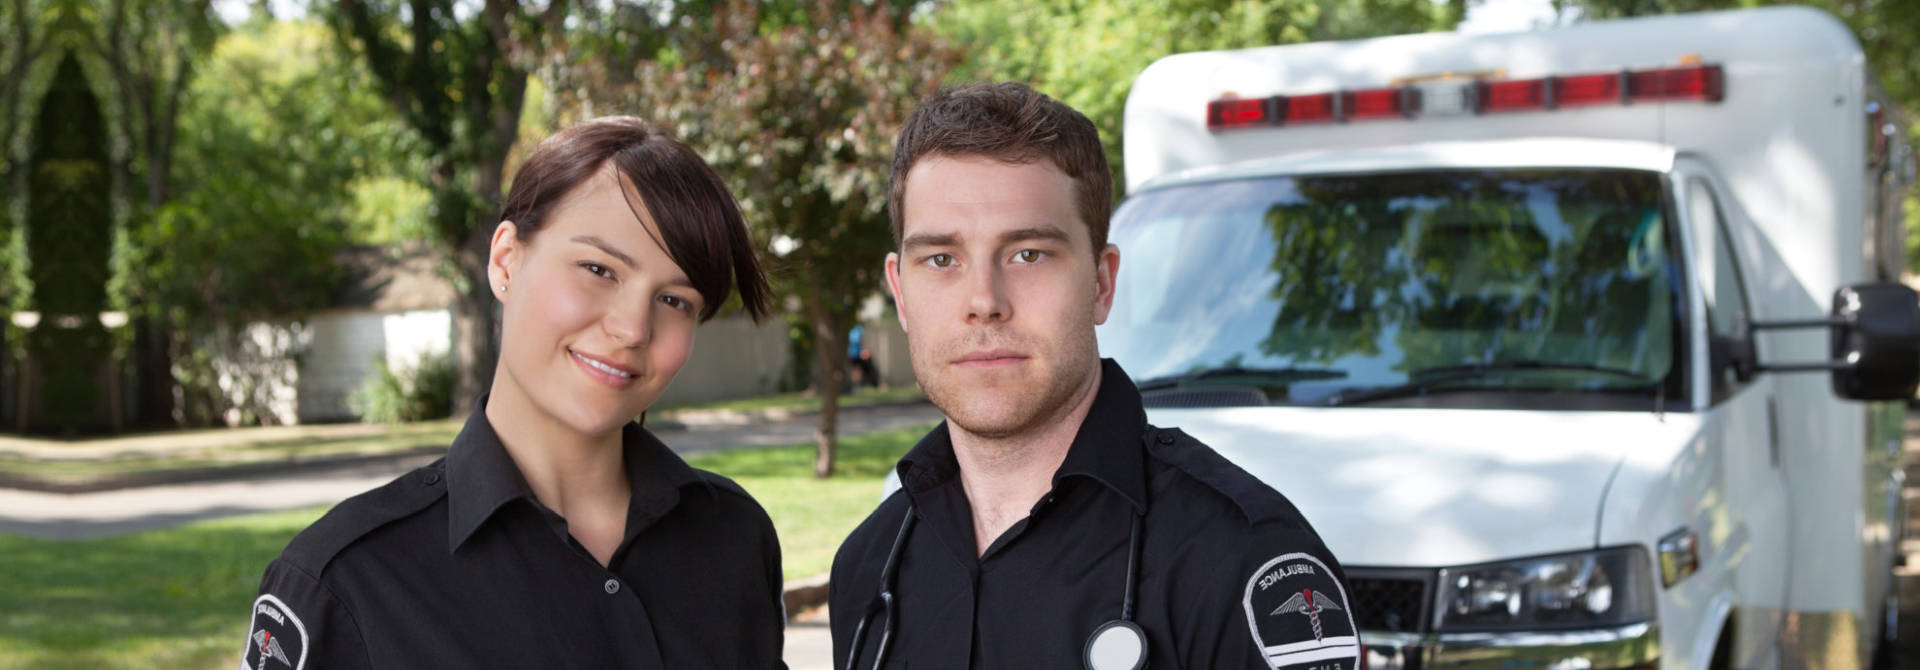 Two paramedics standing in front of ambulance vehicle